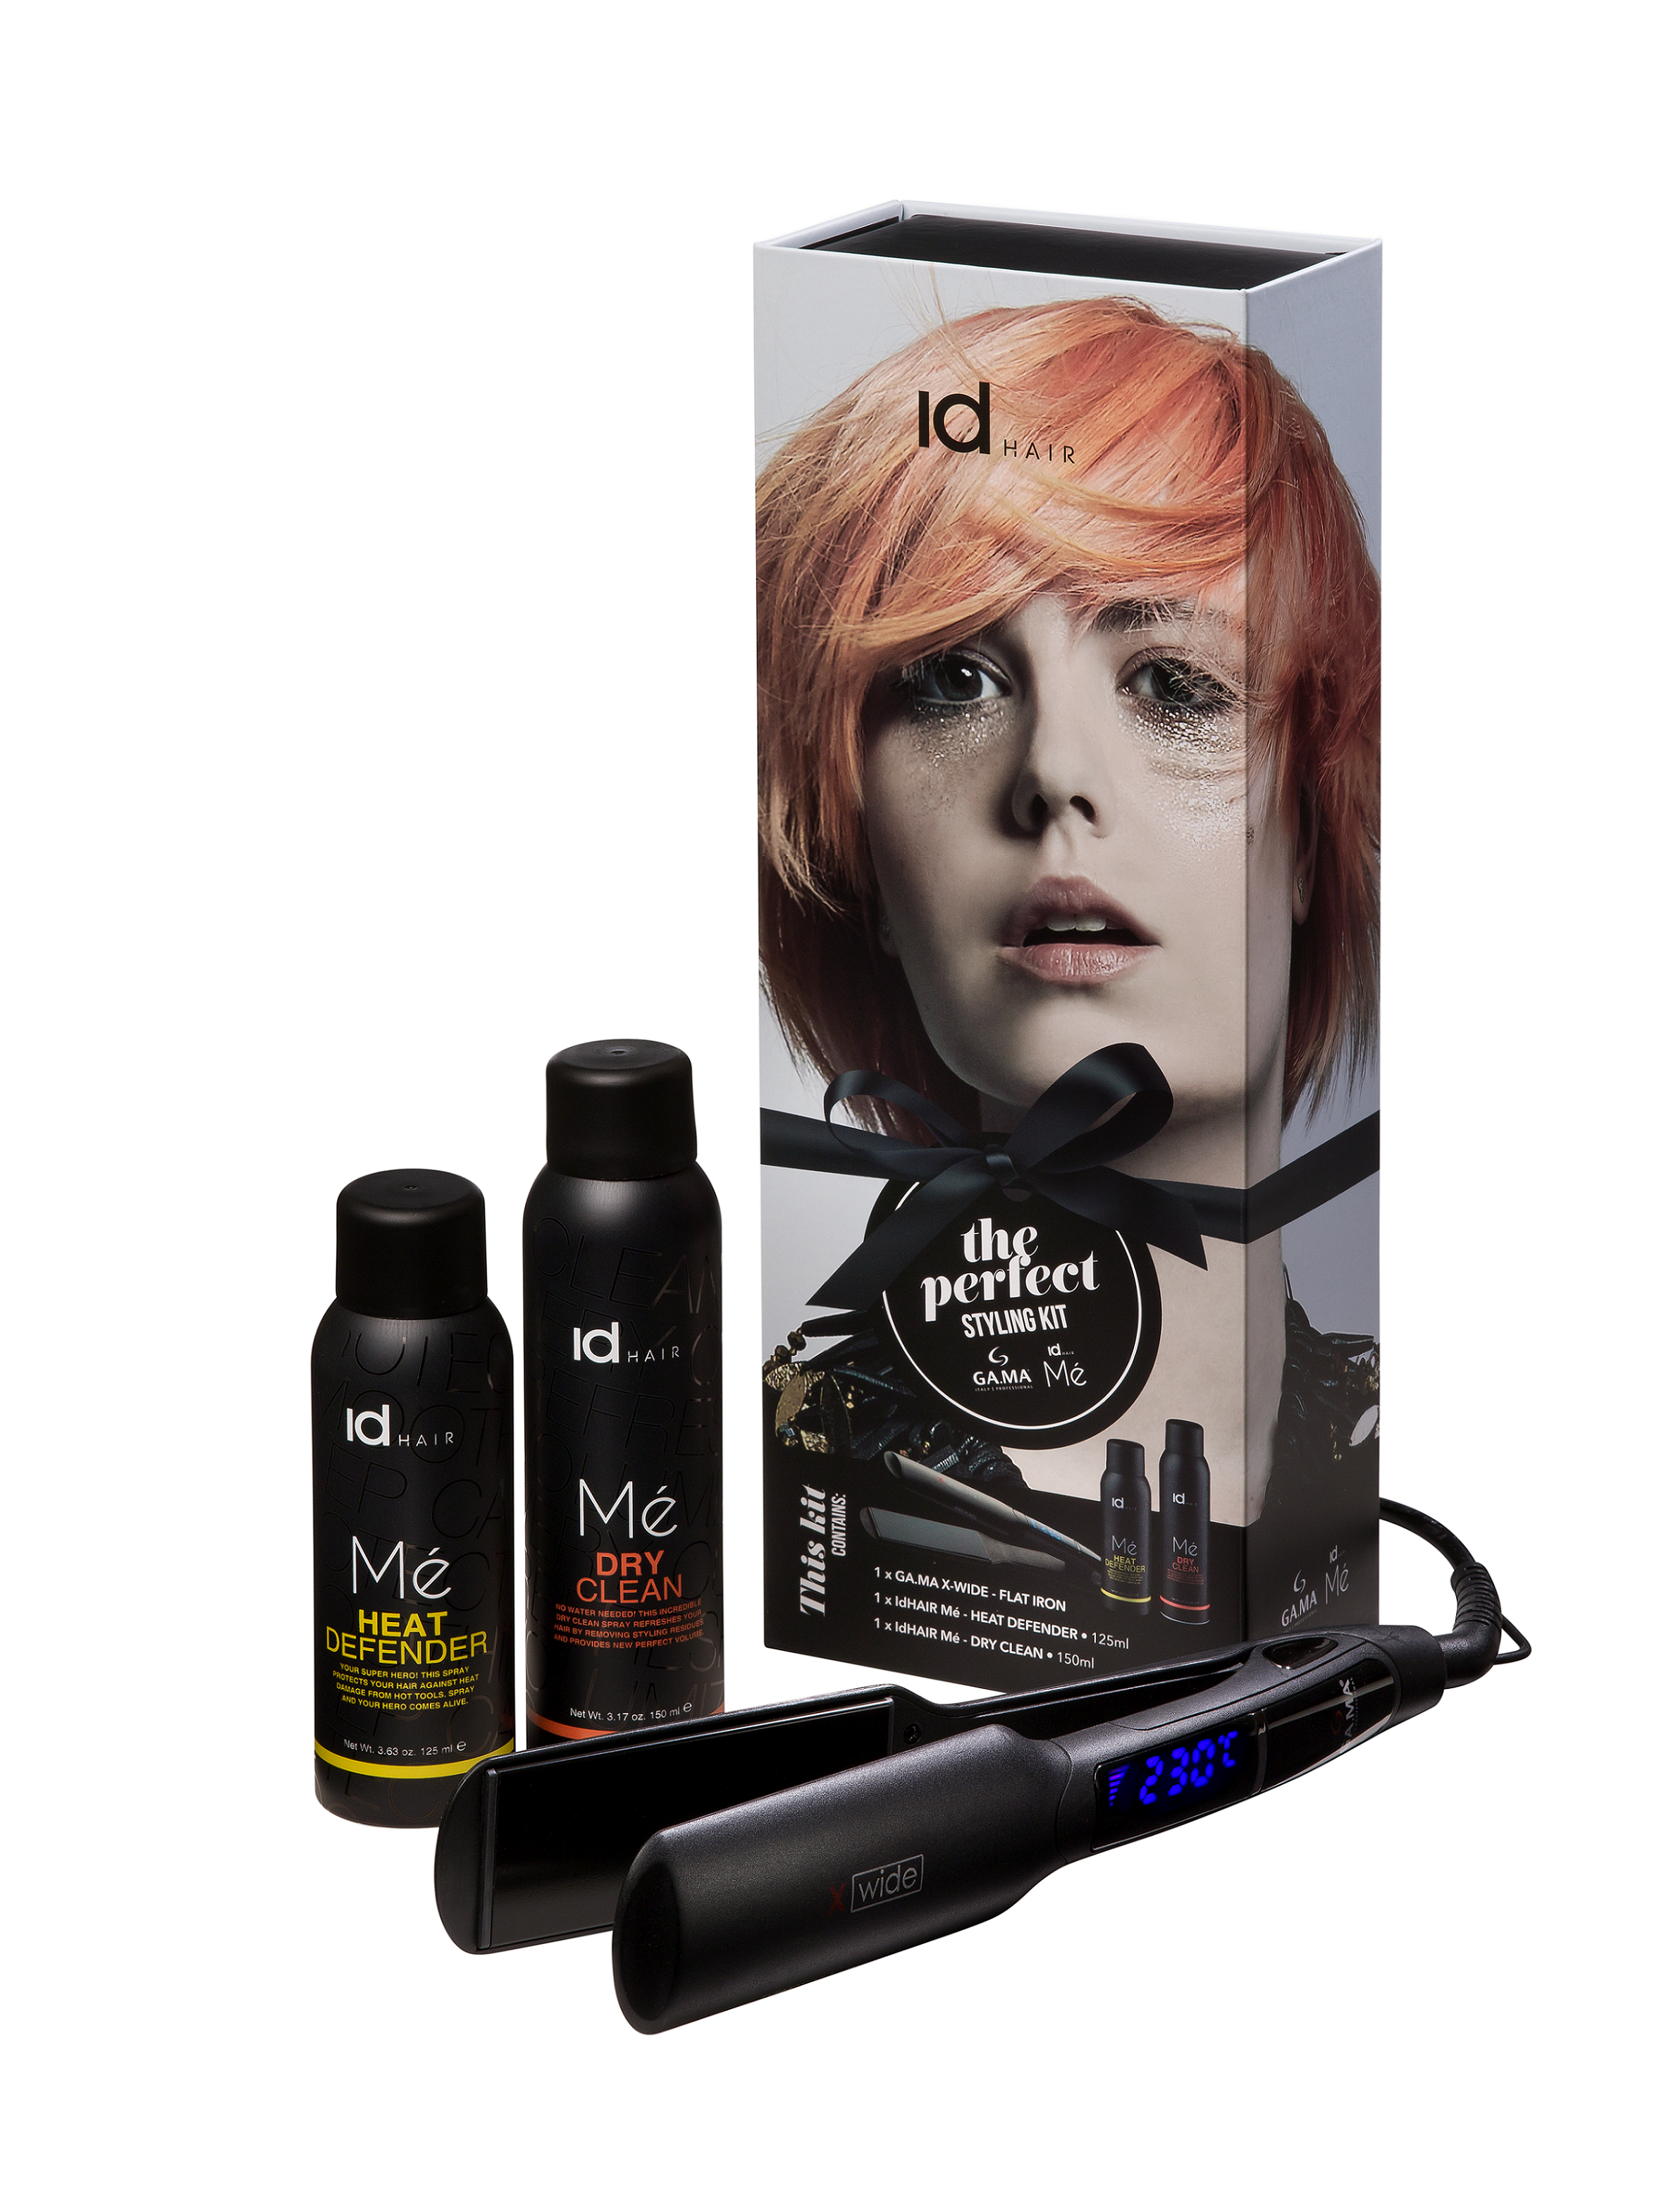 IdHAIR - Mé The Perfect Styling Kit